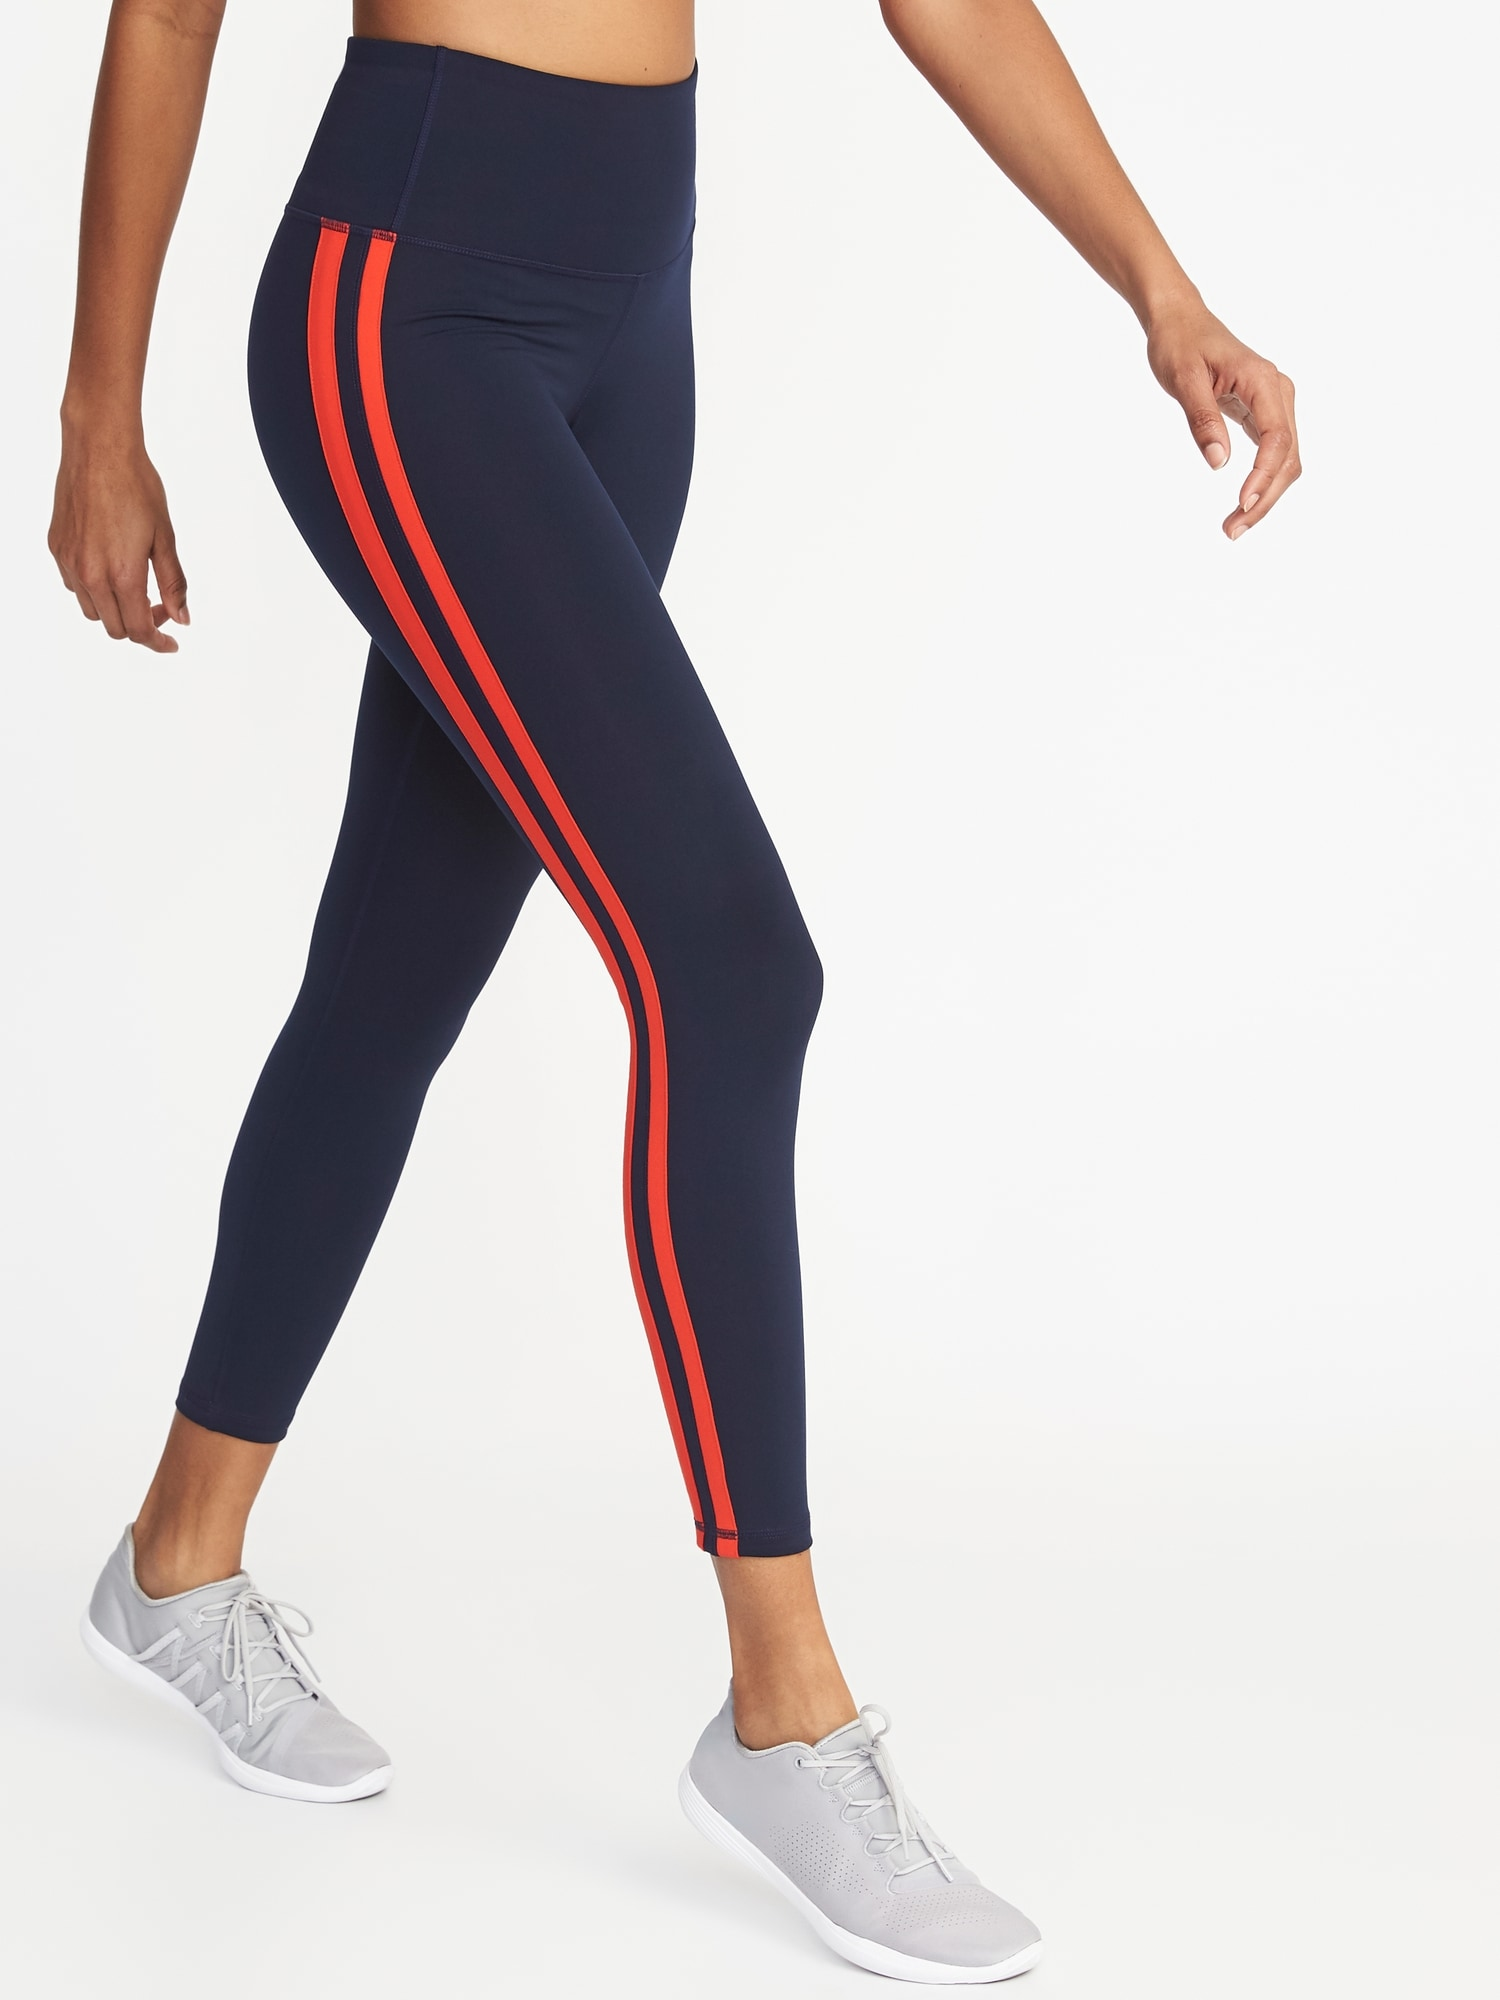 be89375585e6 OLD NAVY. HIGH-RISE SIDE-STRIPE 7/8-LENGTH COMPRESSION LEGGINGS FOR WOMEN